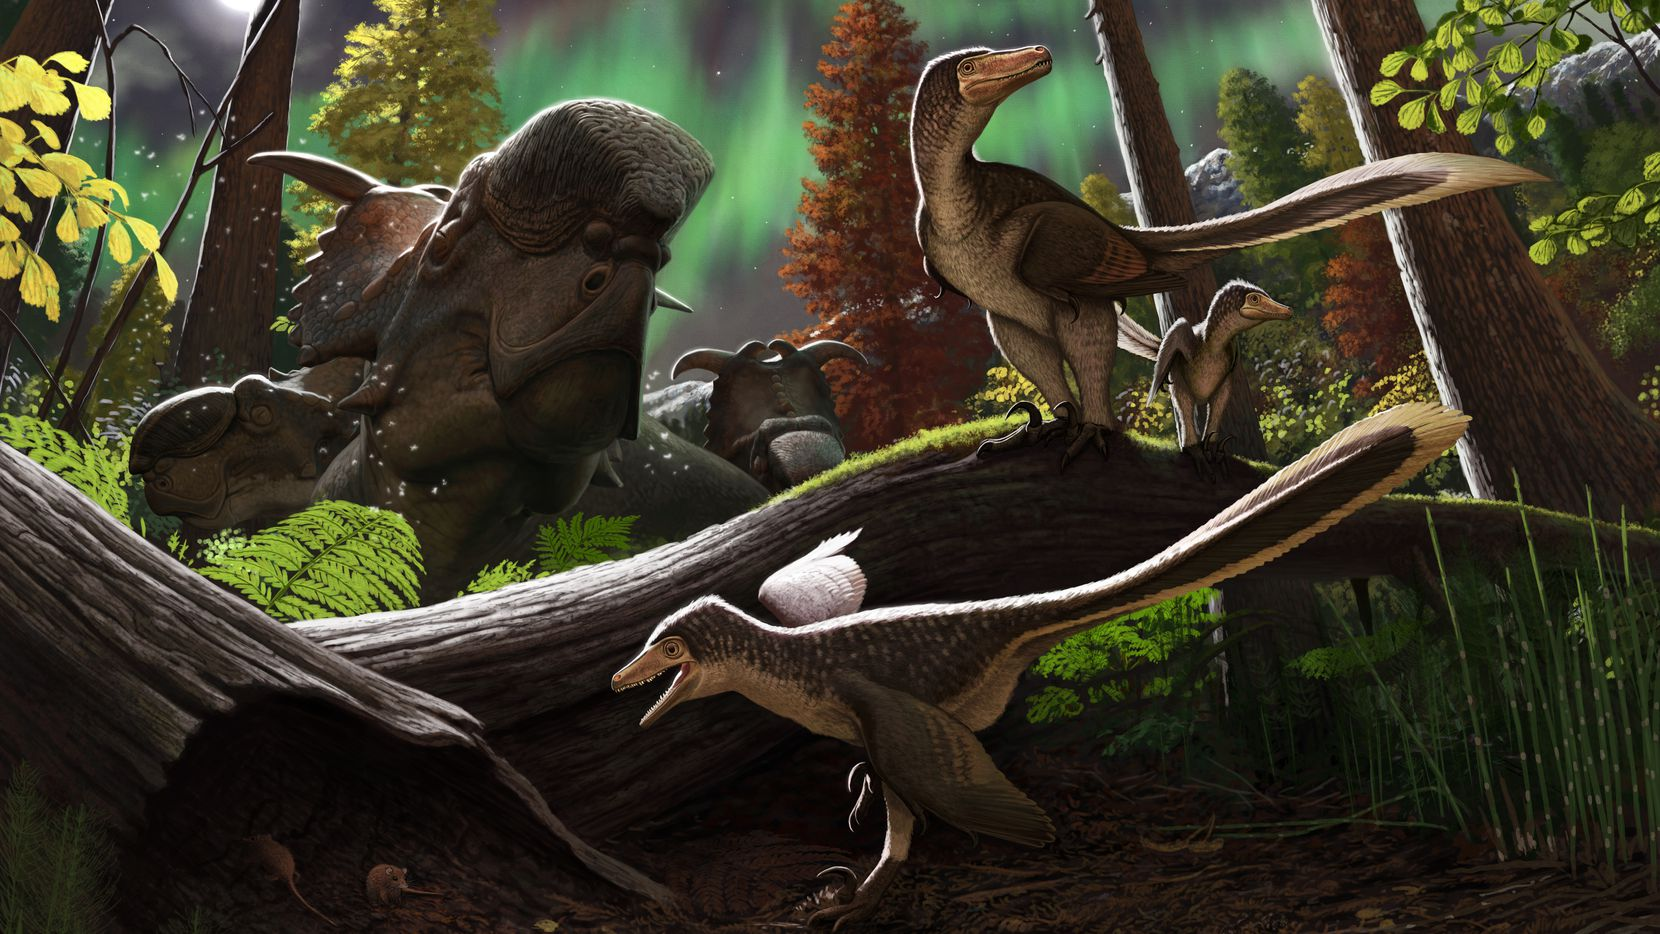 Artistic rendering of a juvenile dromaeosaur 70 million years ago on the Prince Creek Formation in northern Alaska.